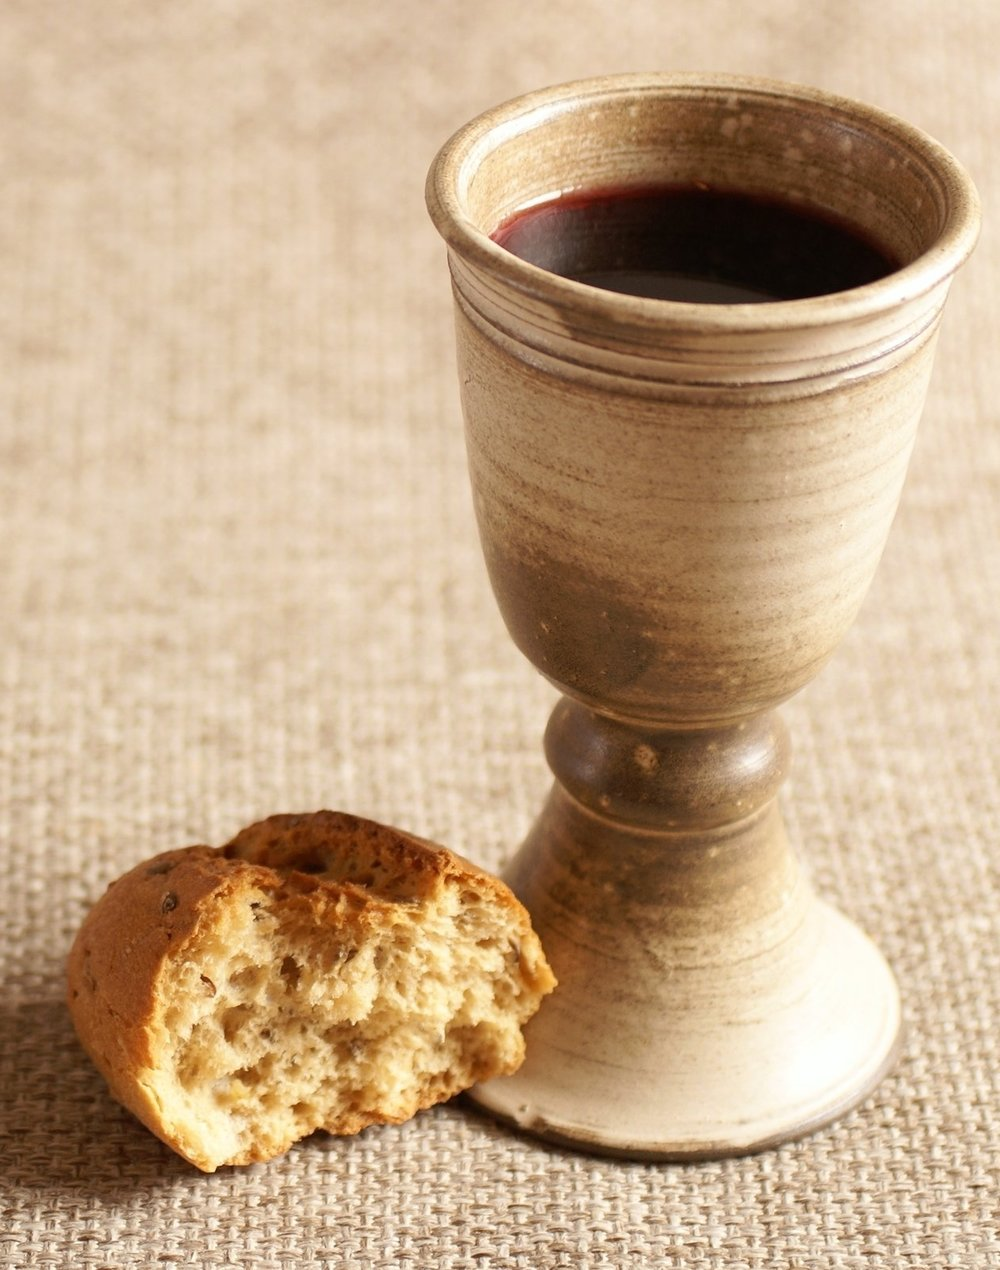 Communion_BreadWine-2.jpg